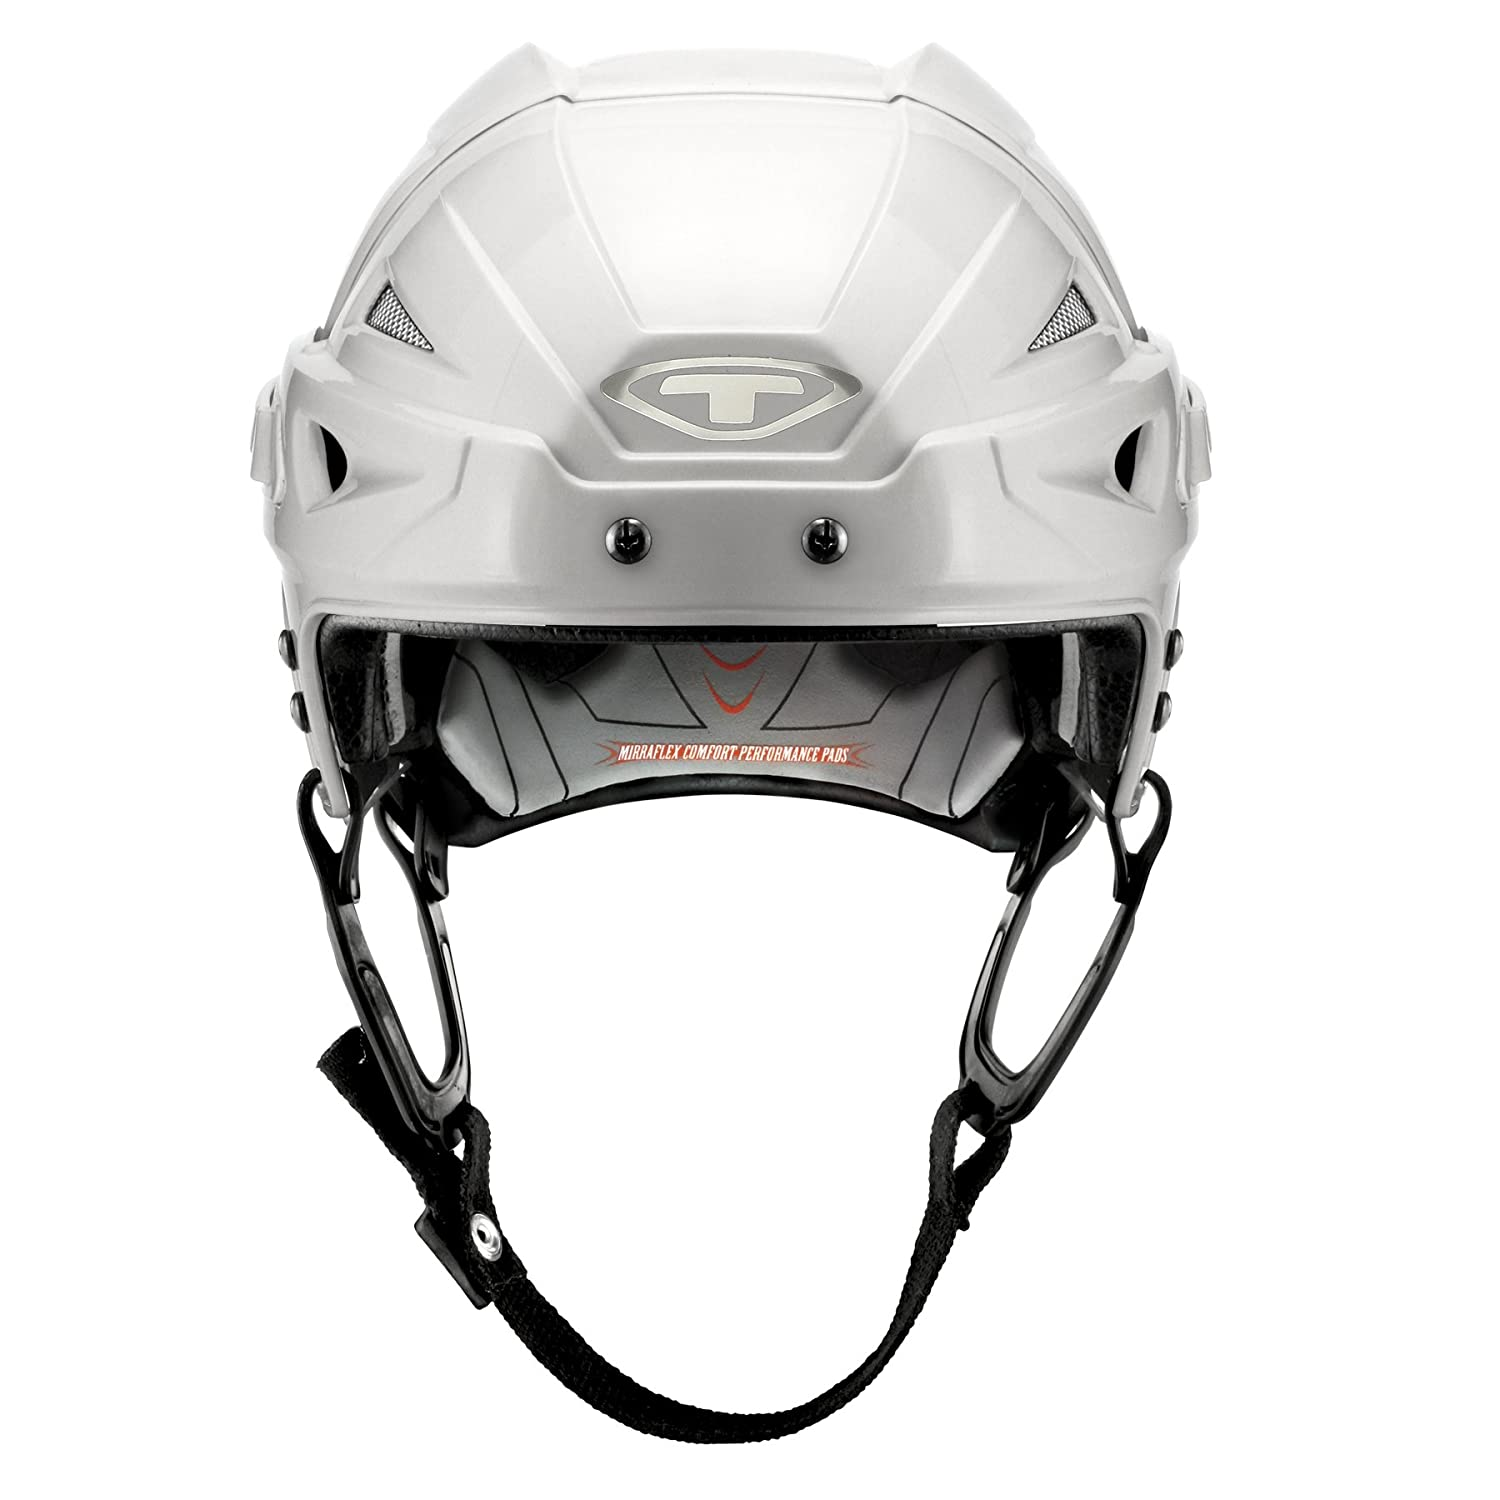 Tour Hockey Spartan Zx Hocley Helmet with No Cage, White, Large H95WHL